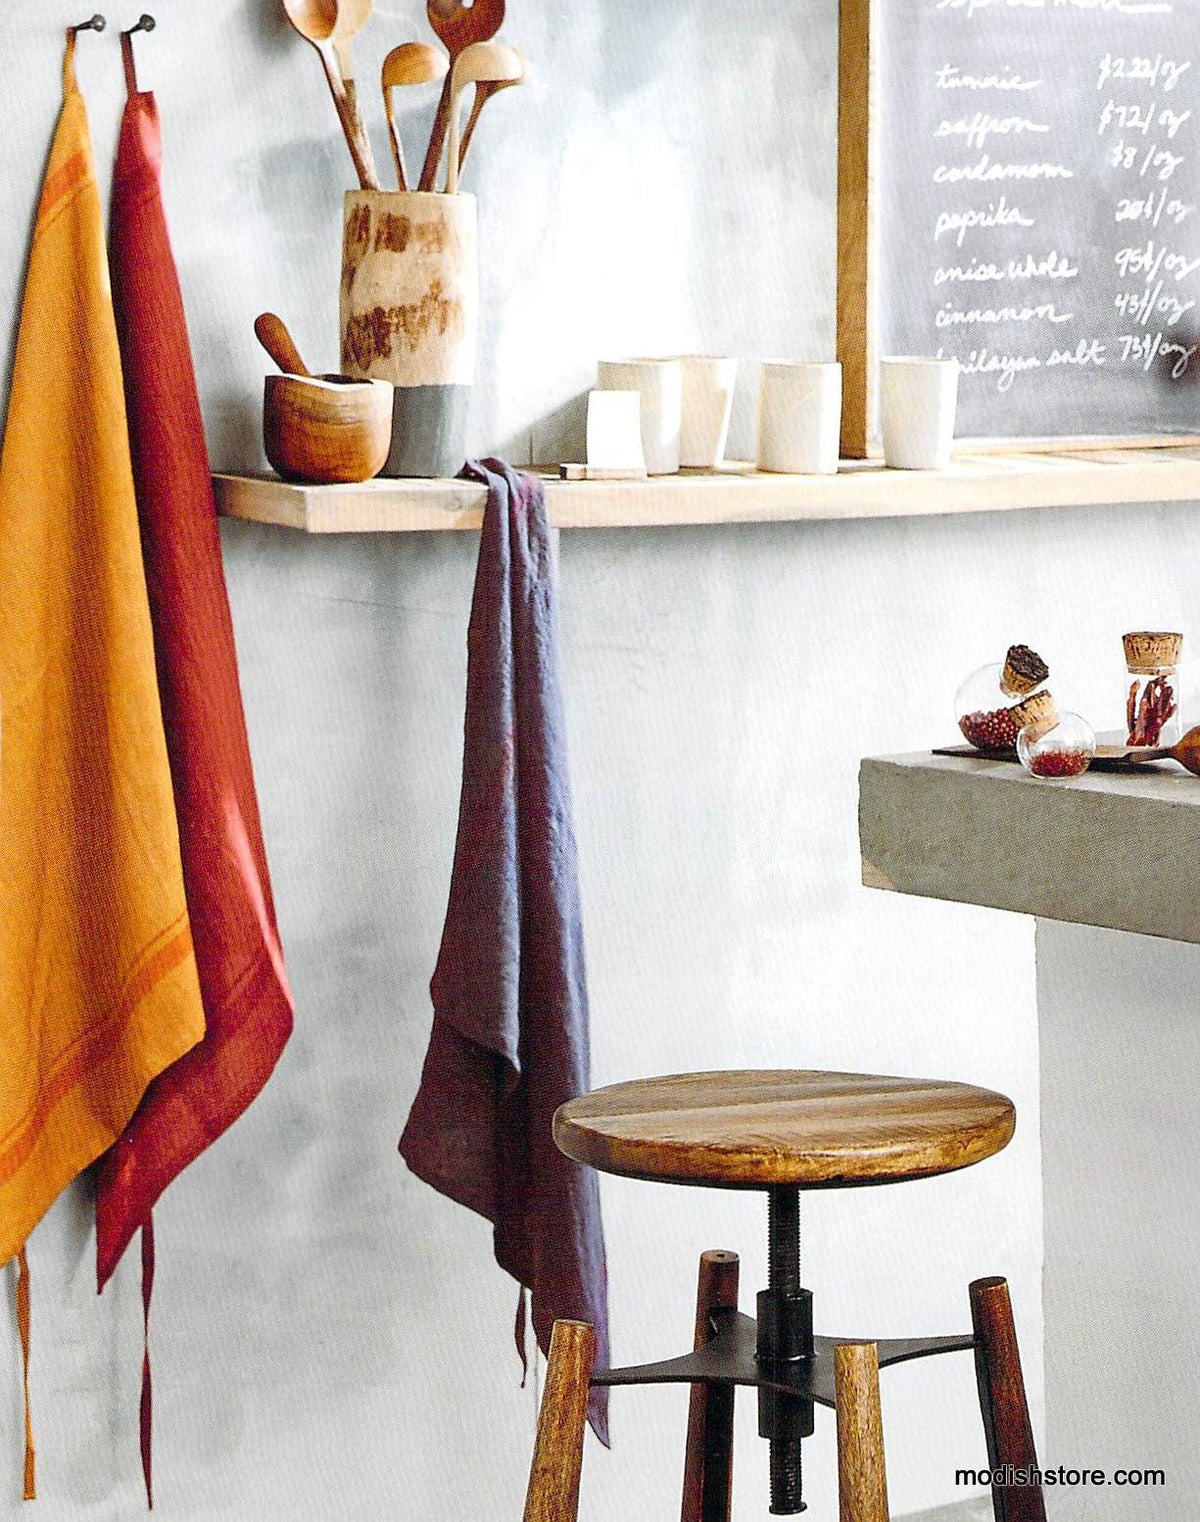 Roost Washed Linen Chefs Towels / Aprons